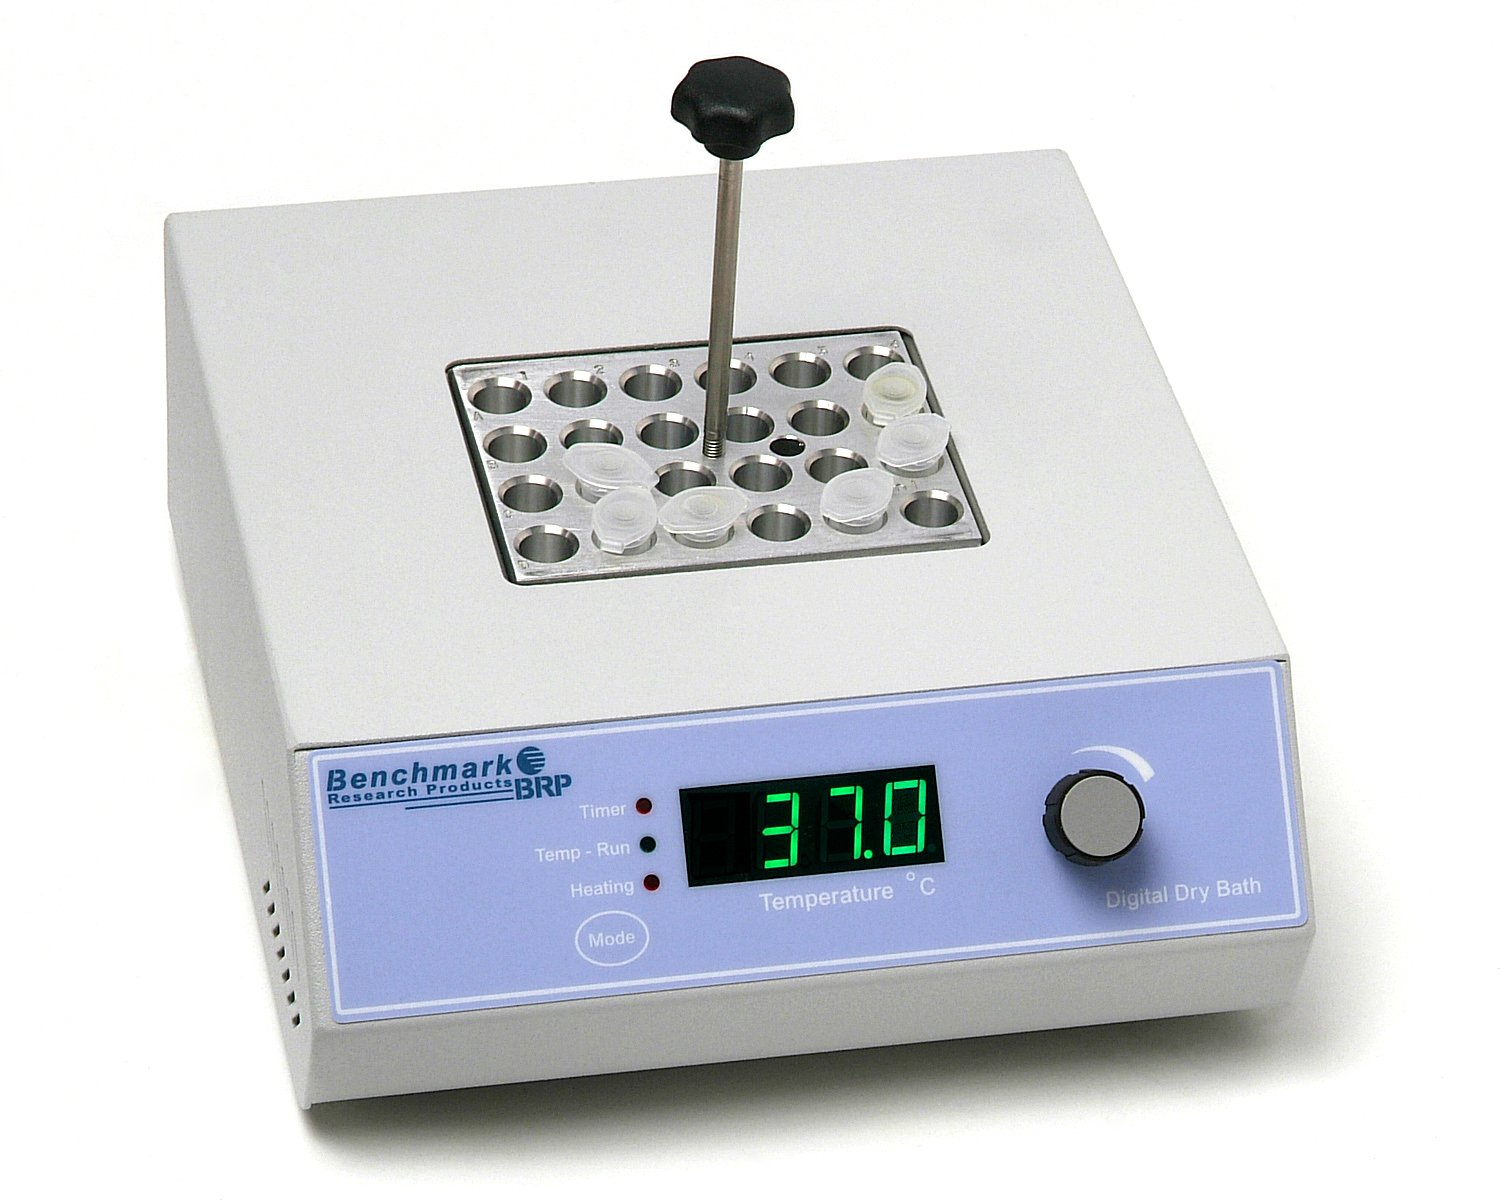 Benchmark Scientific BSH1001 Single Position Digital Dry Bath Incubator, 20 Width x 8 Height x 23 Depth cm, 115VAC, +5 to 150 Degree C